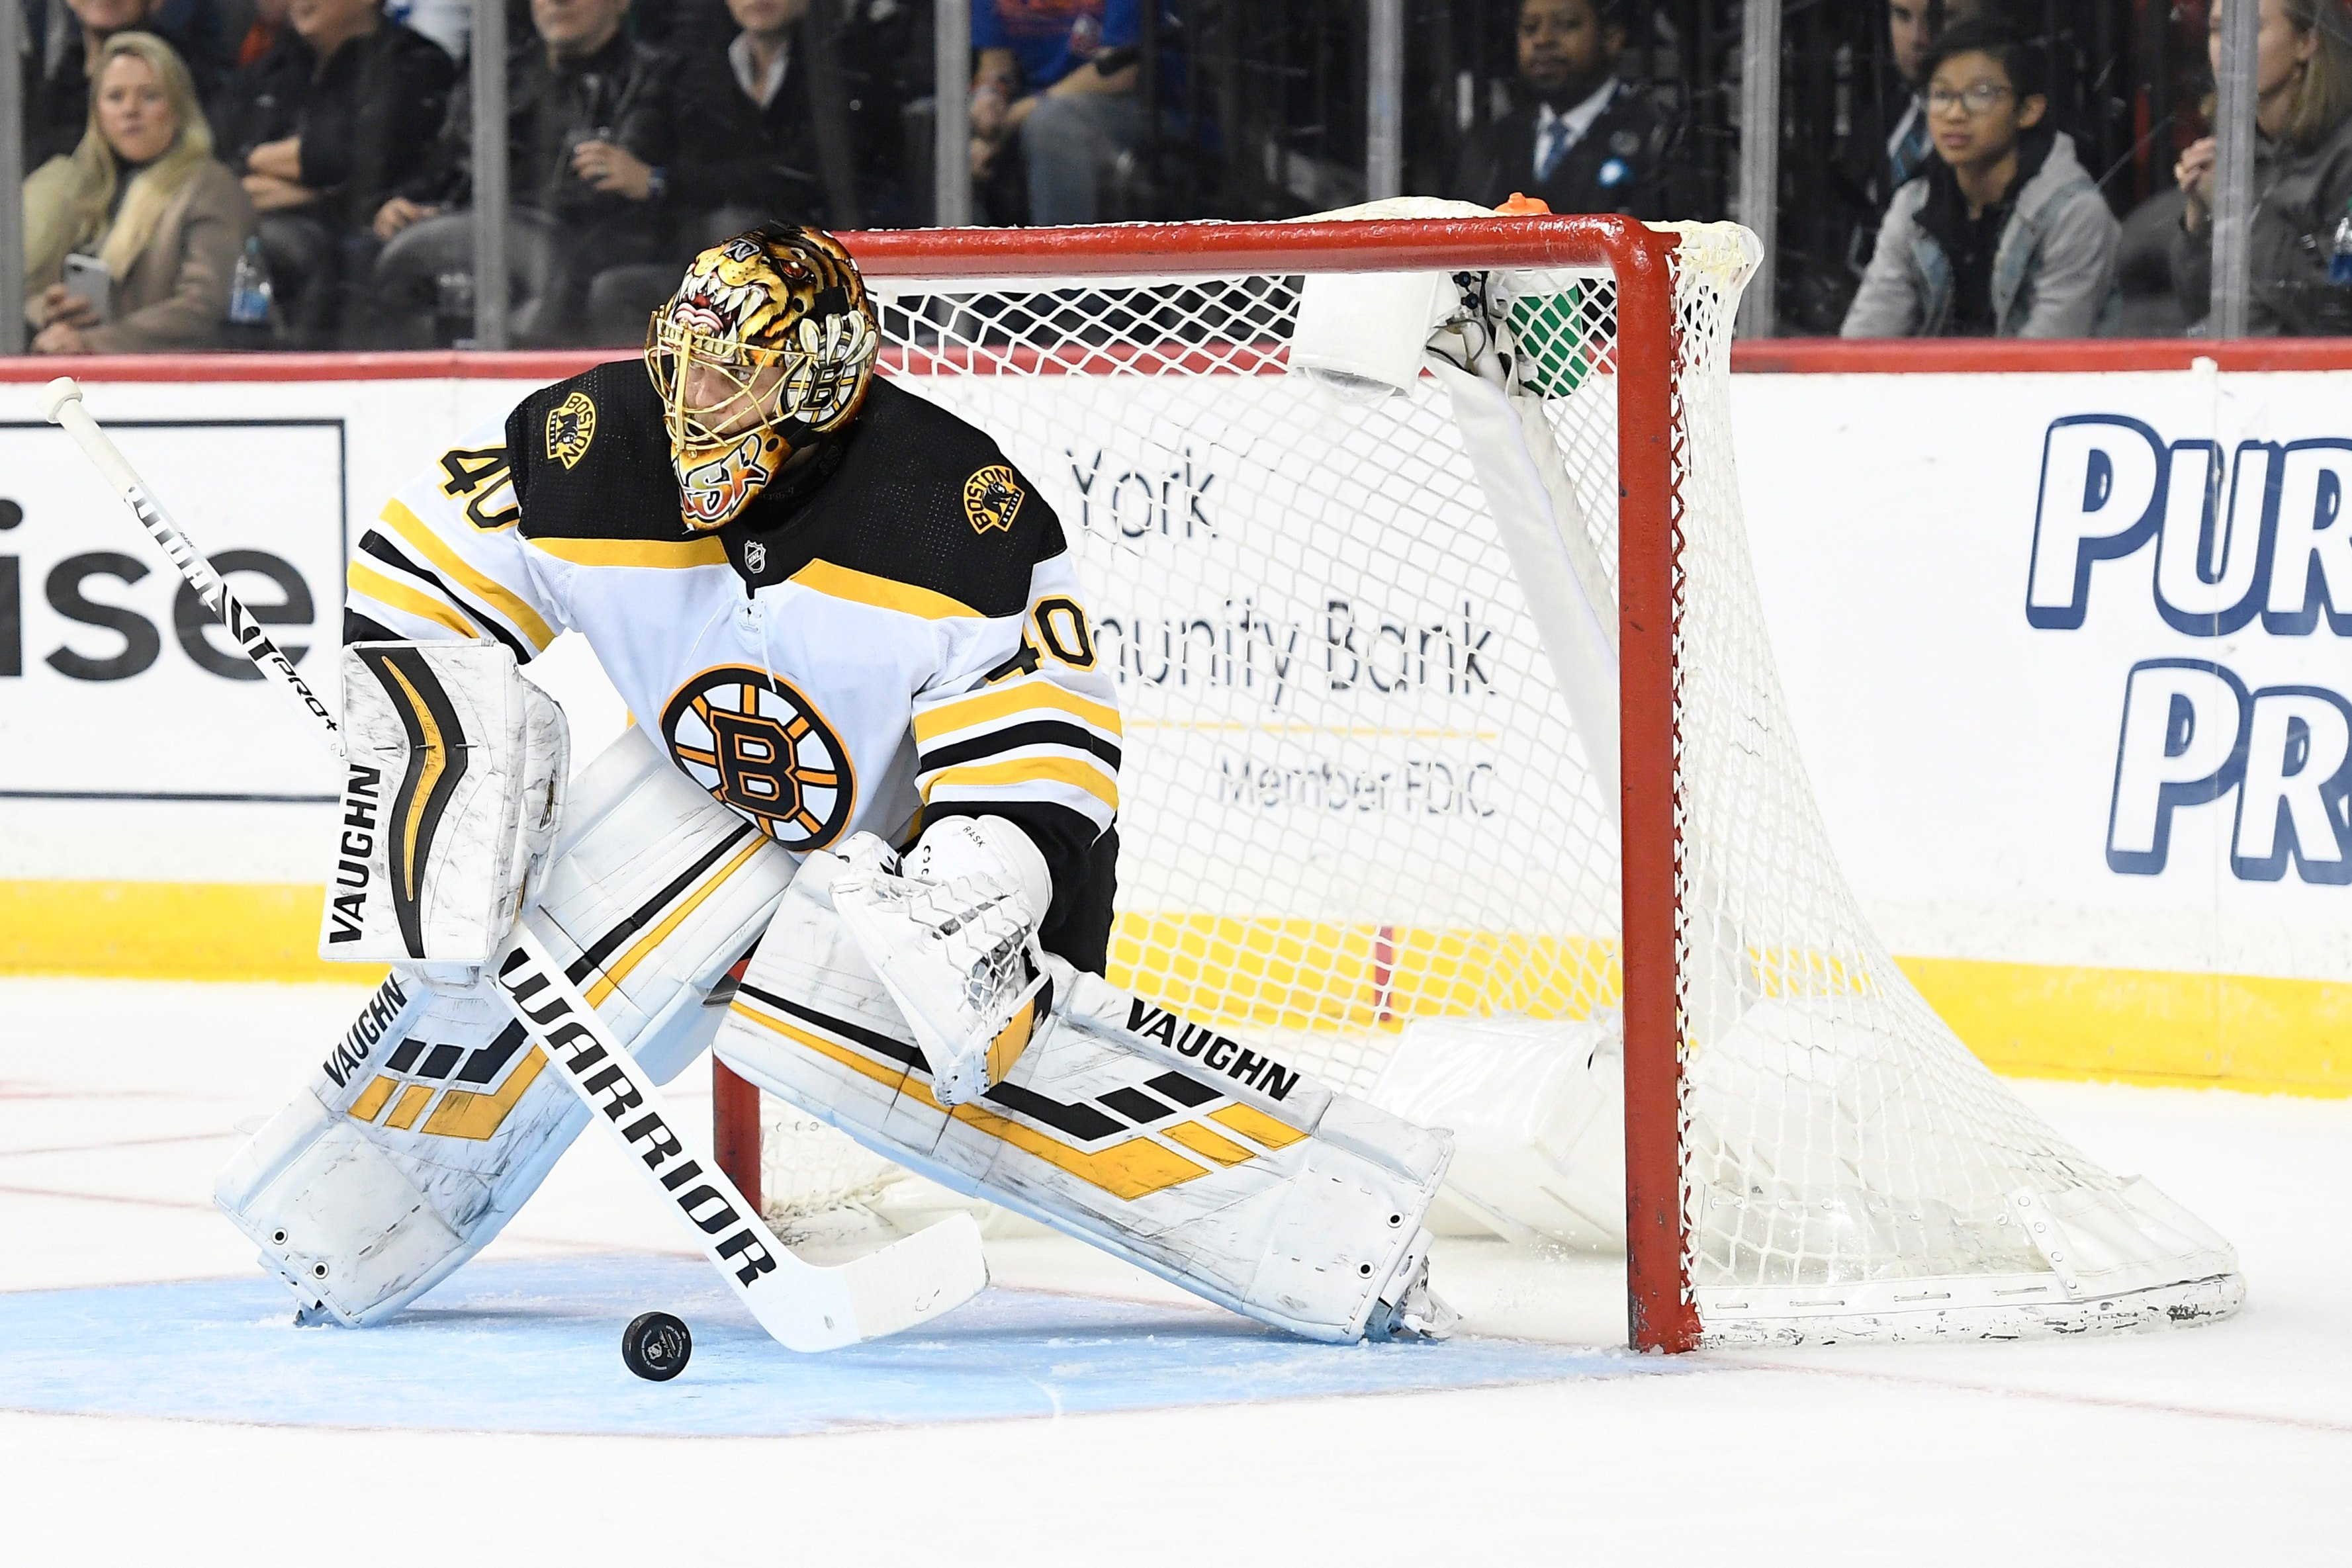 Bruins goalie Tuukka Rask concussed on unpenalized blow to head